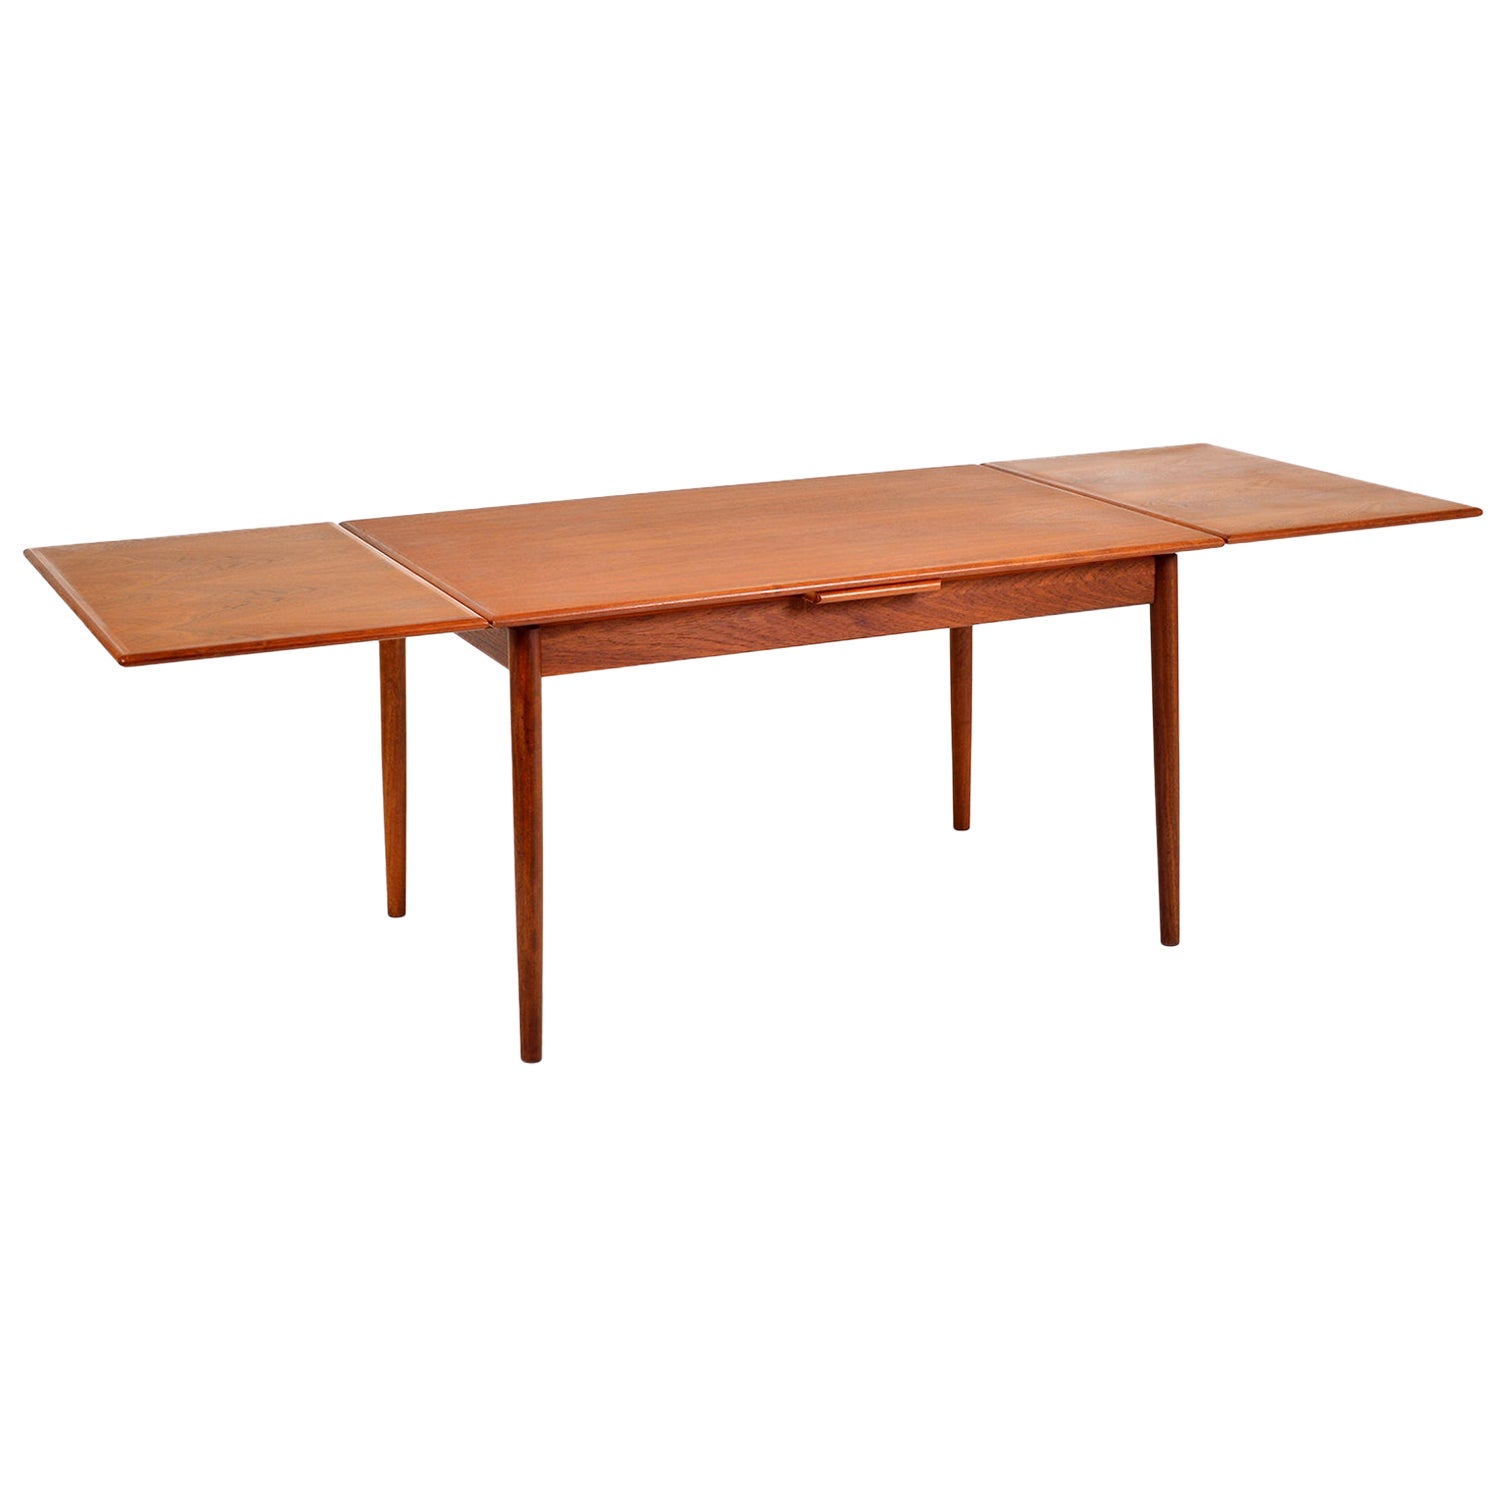 1960s Danish Modern Teak Extending Dining Table AM Ansager Mobler Midcentury